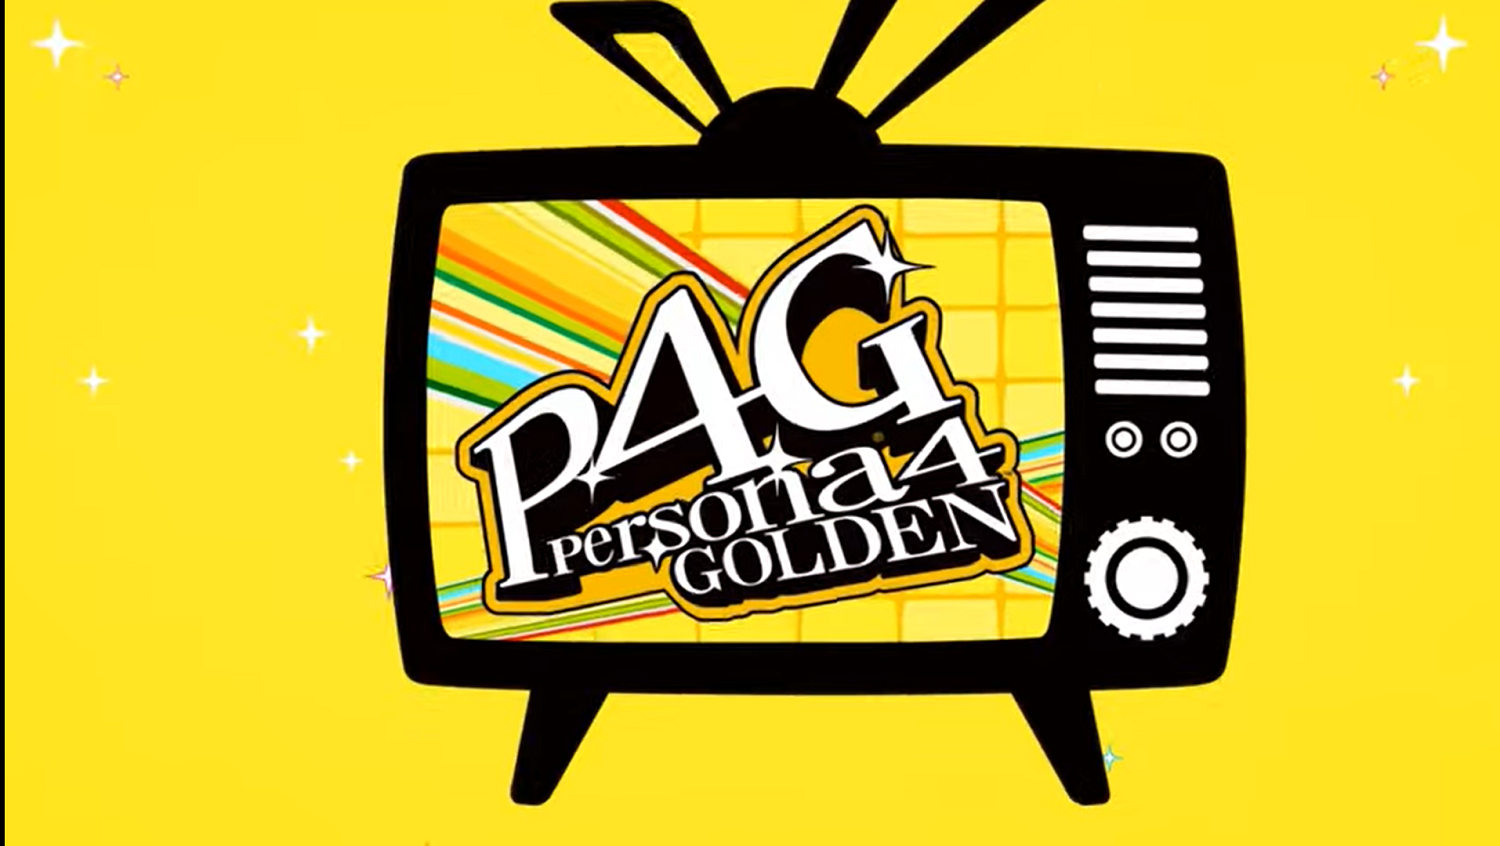 Persona 4 Golden Guide How To Get All Endings Including The True Best Ending Tech Times